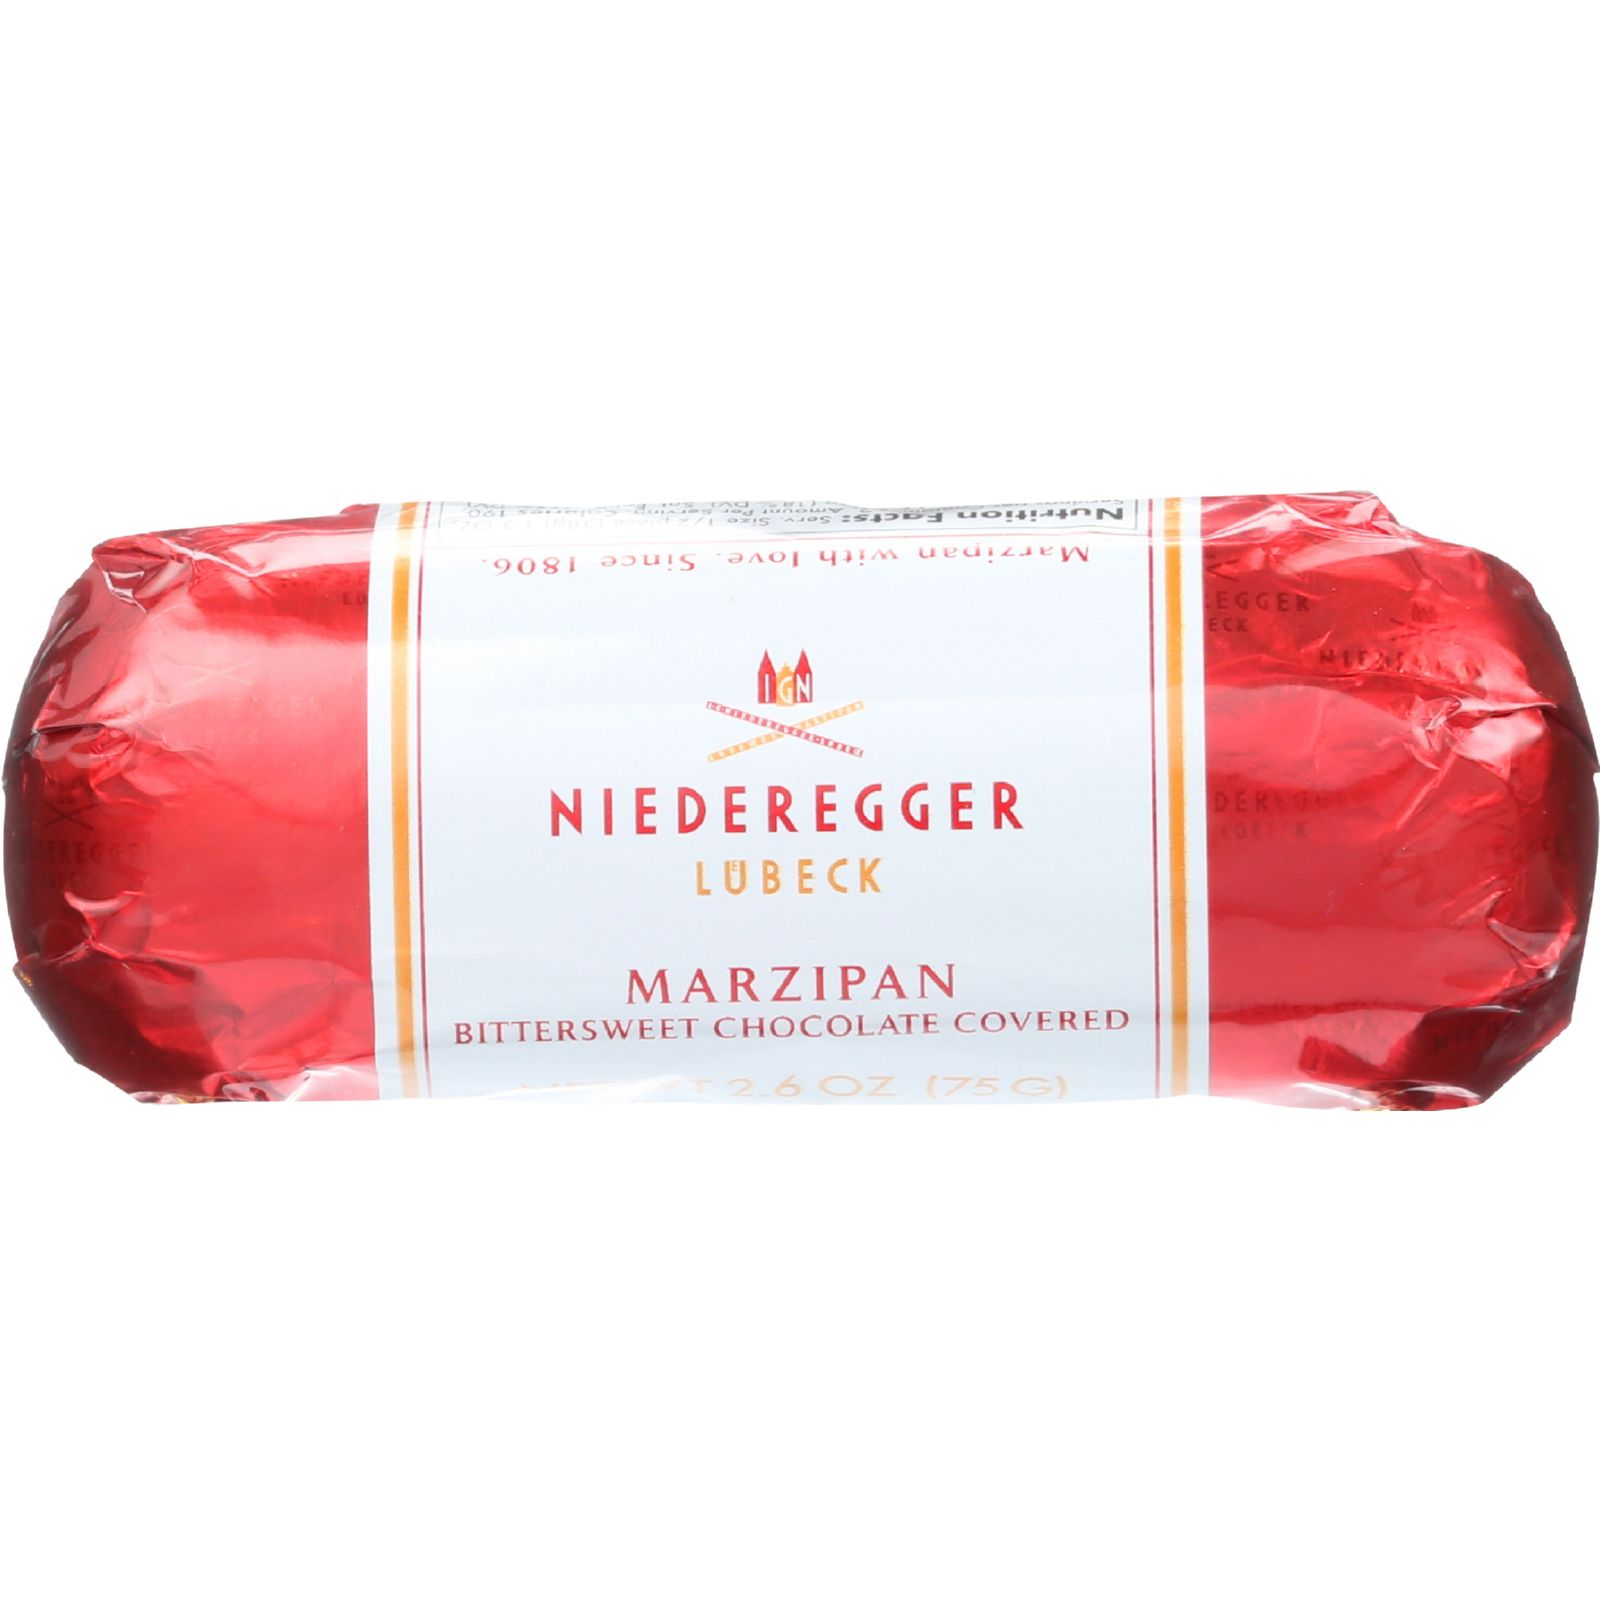 Niederegger Marzipan Loaf - Chocolate Covered - 2.6 oz - ...